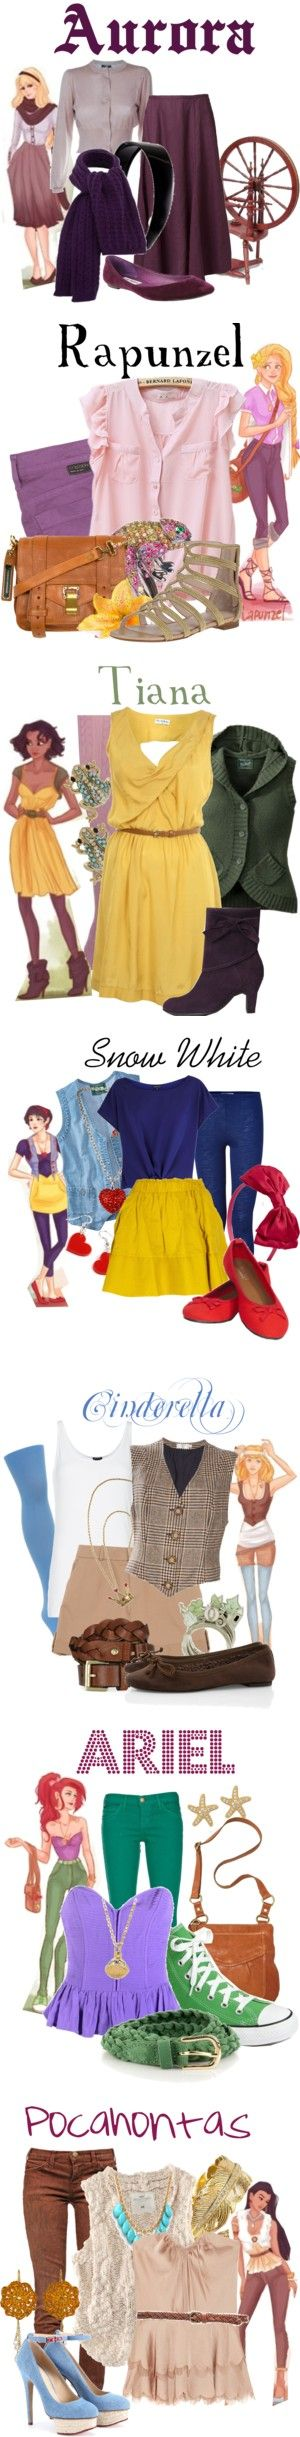 """Hipster Disney Princess Collection"" sometimes I think women have it easier to be stylish and classy than men. So tell me: 1.) why they say ""I don't have anything to wear"" 2.) why some girls dress in slutty overly disgusting outfits that bare too much."